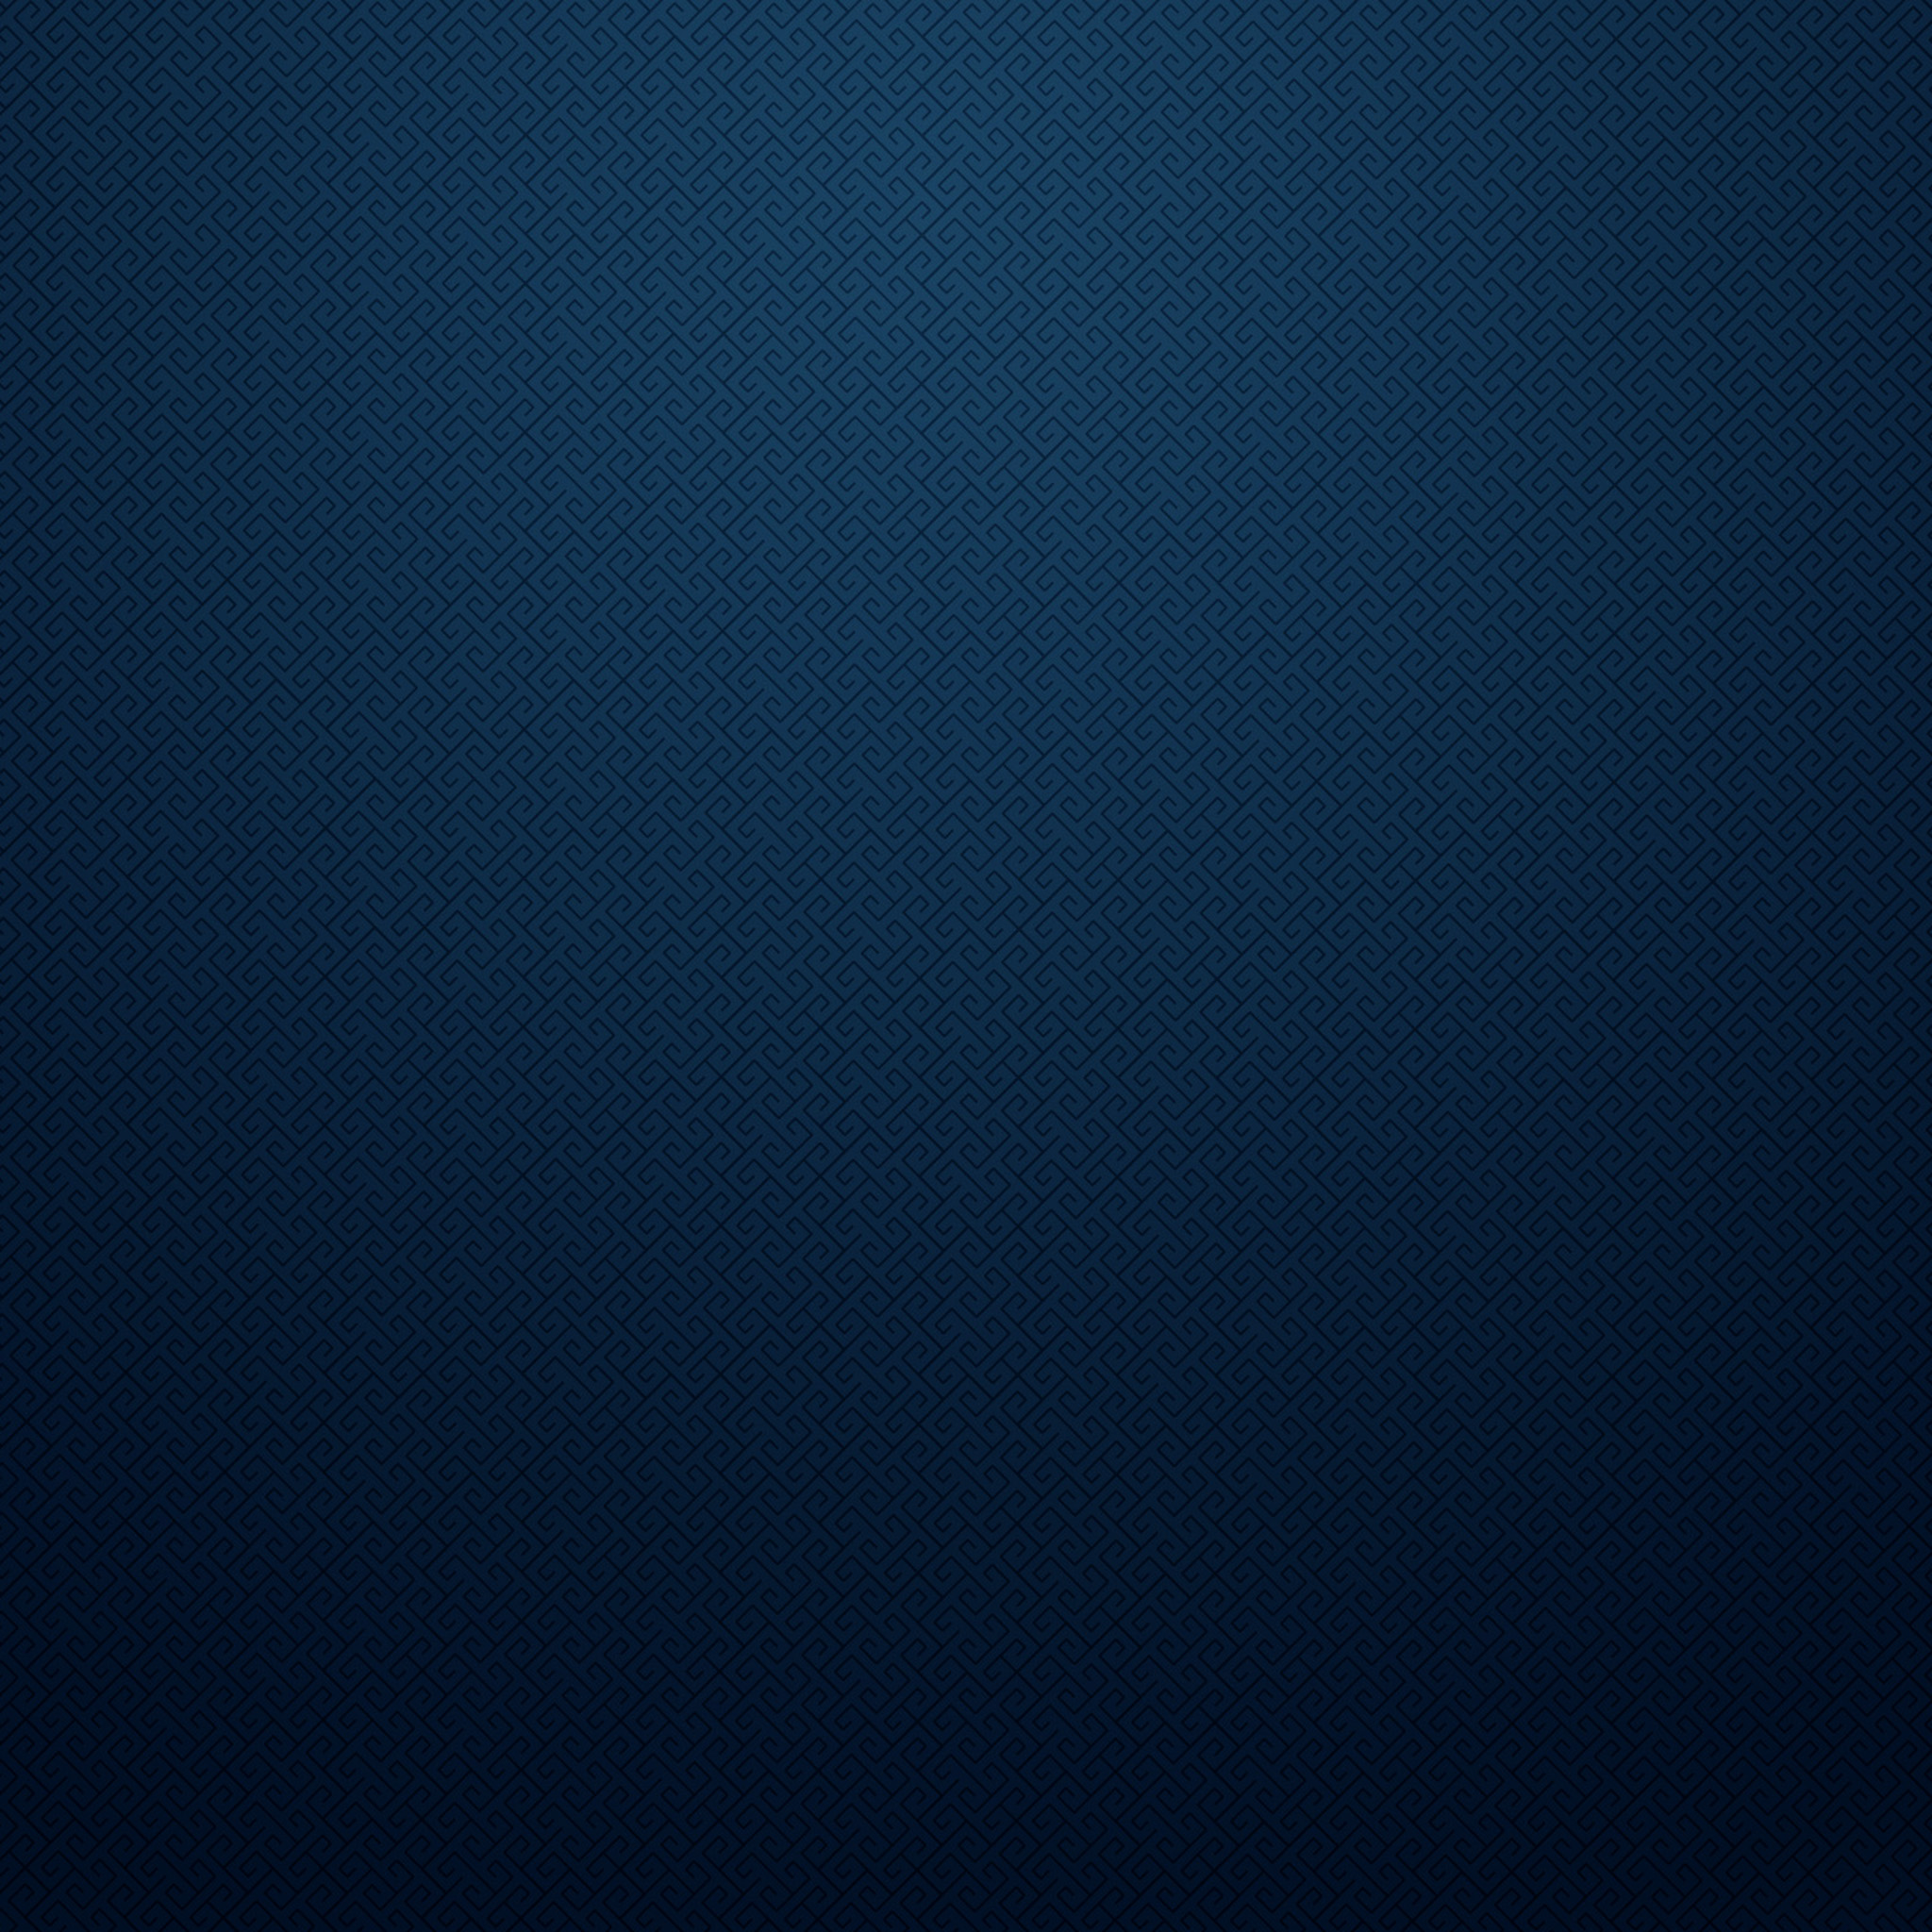 Cool Dark Blue Background